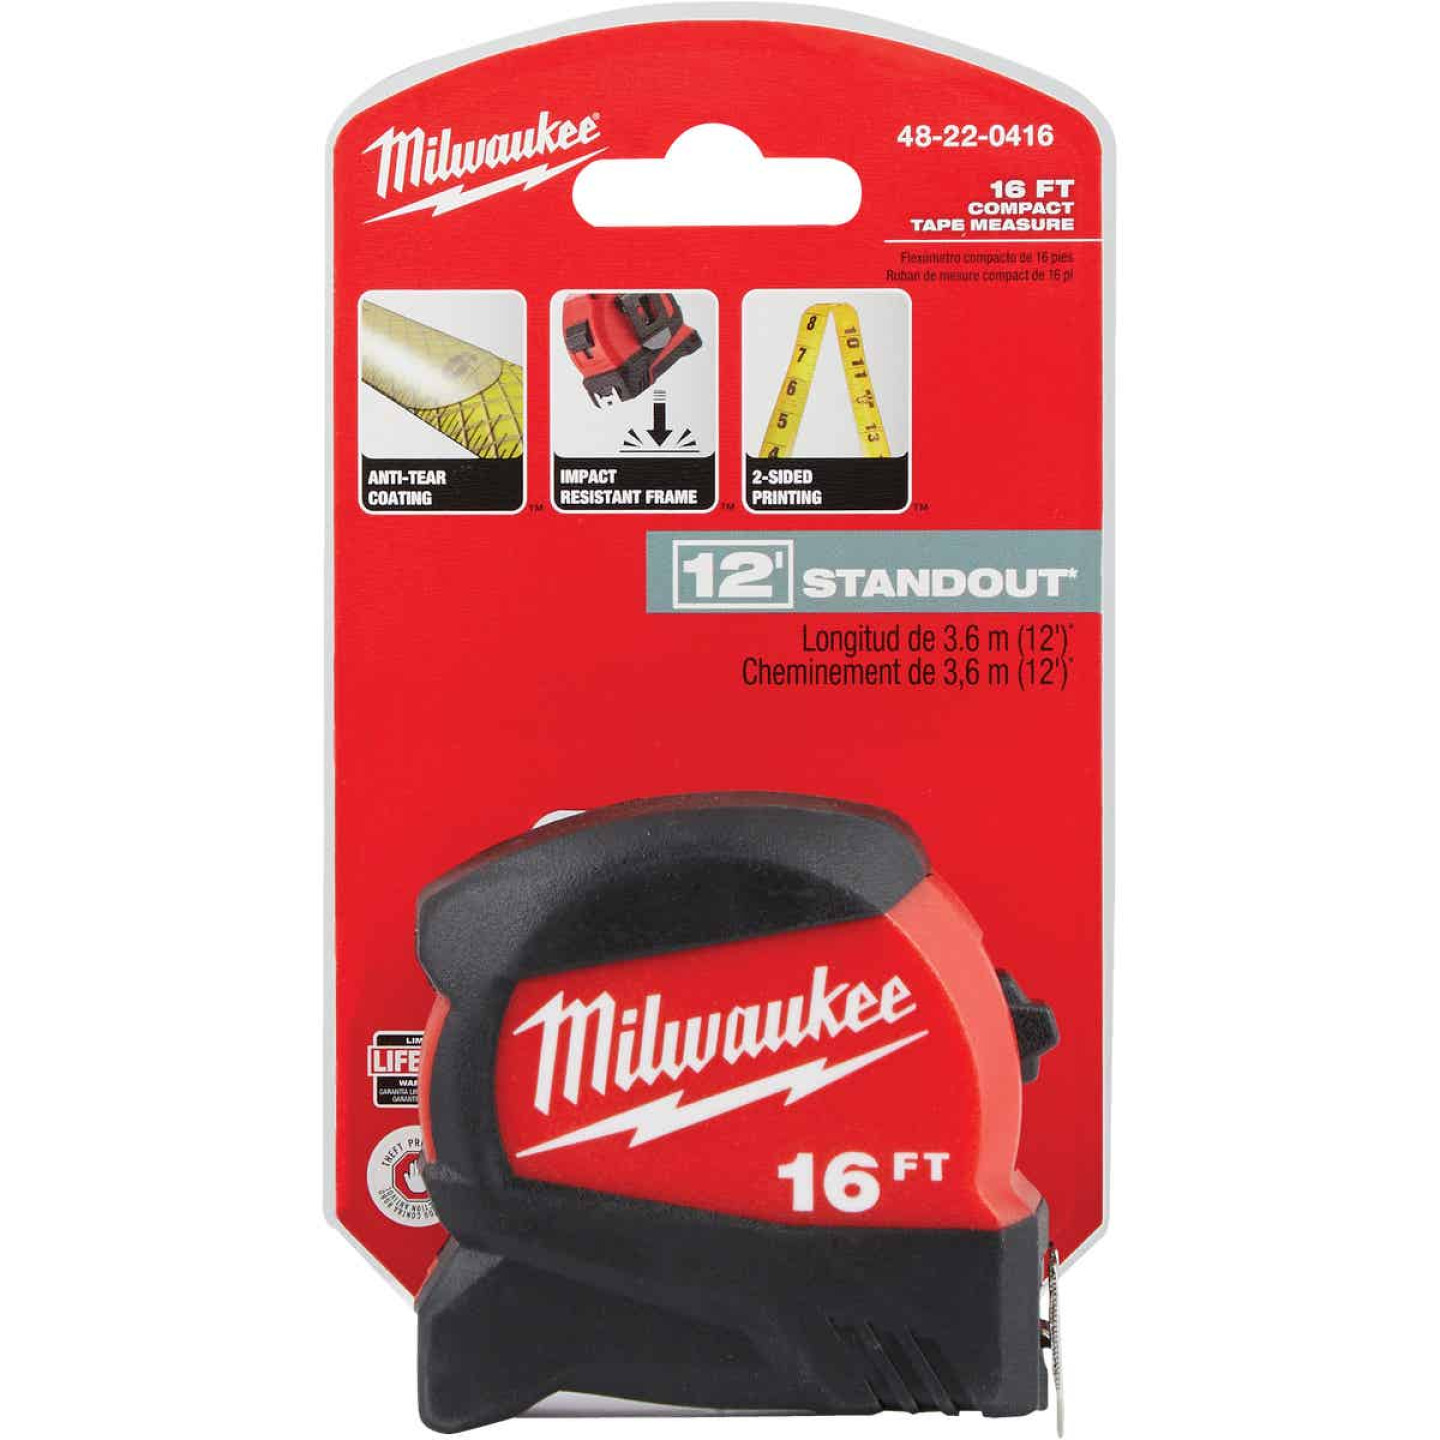 Milwaukee 16 Ft. Compact Wide Blade Tape Measure Image 2